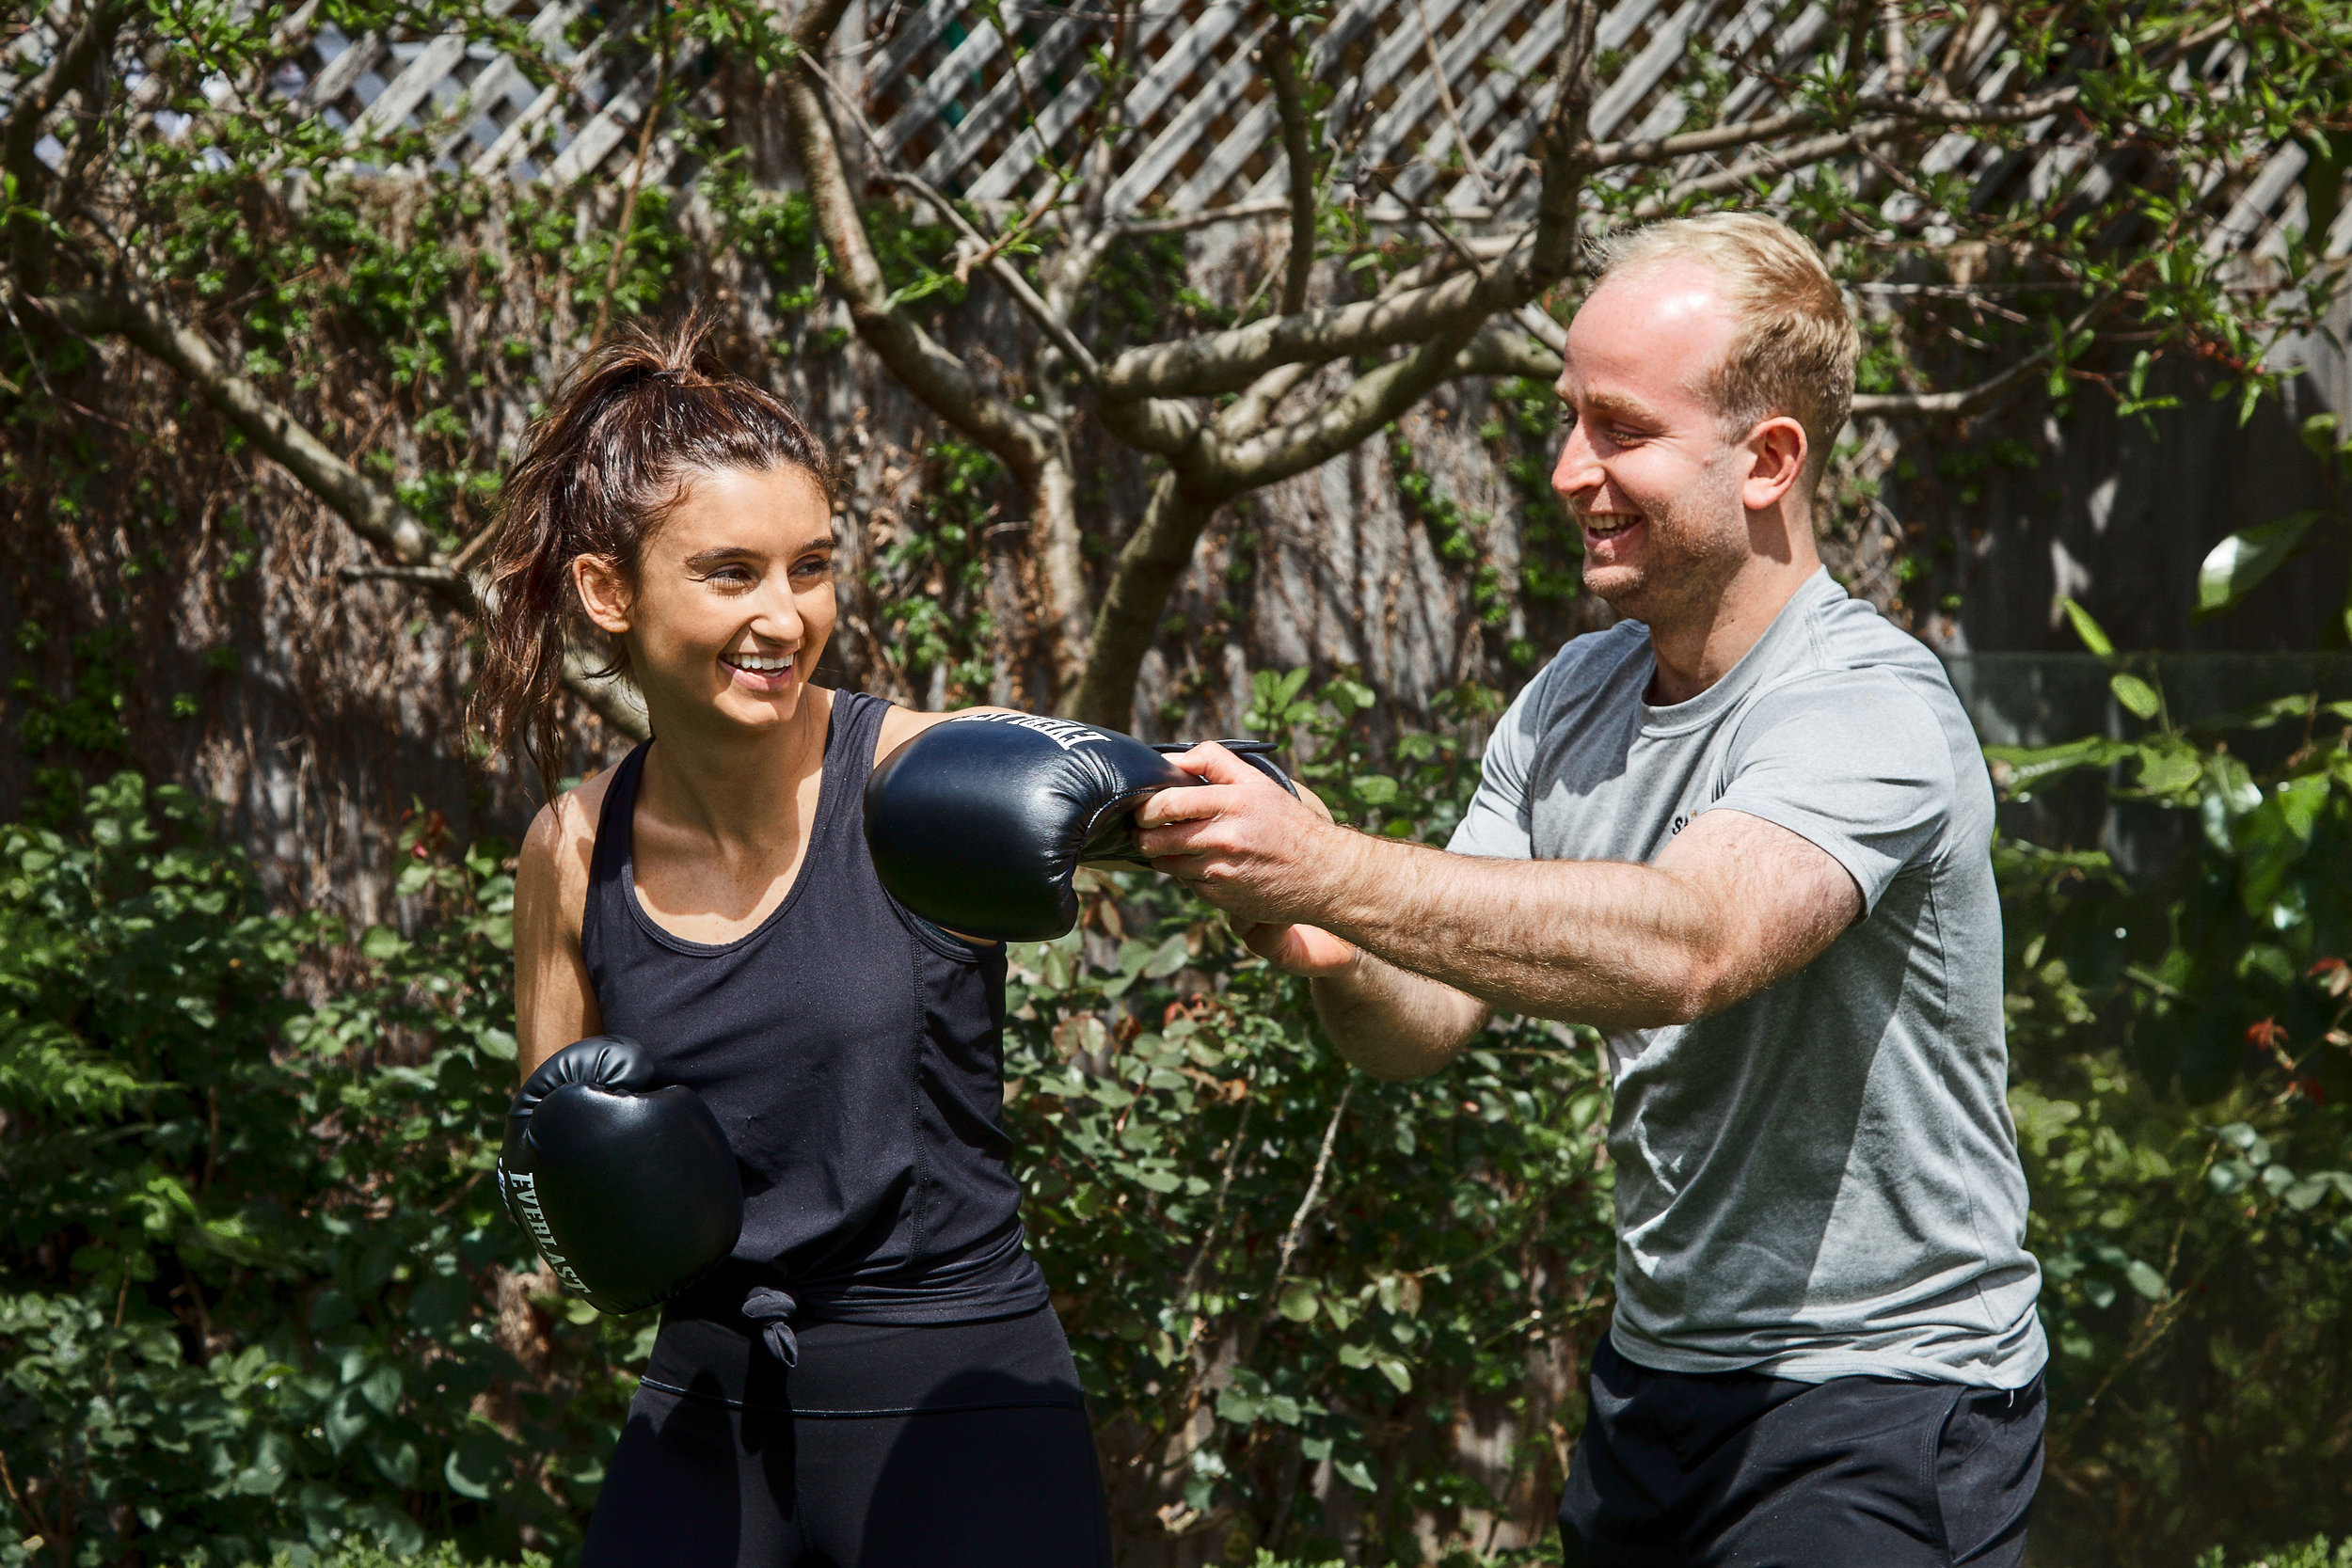 Private Personal Training with Saint Fitness Melbourne Mobile Personal Training